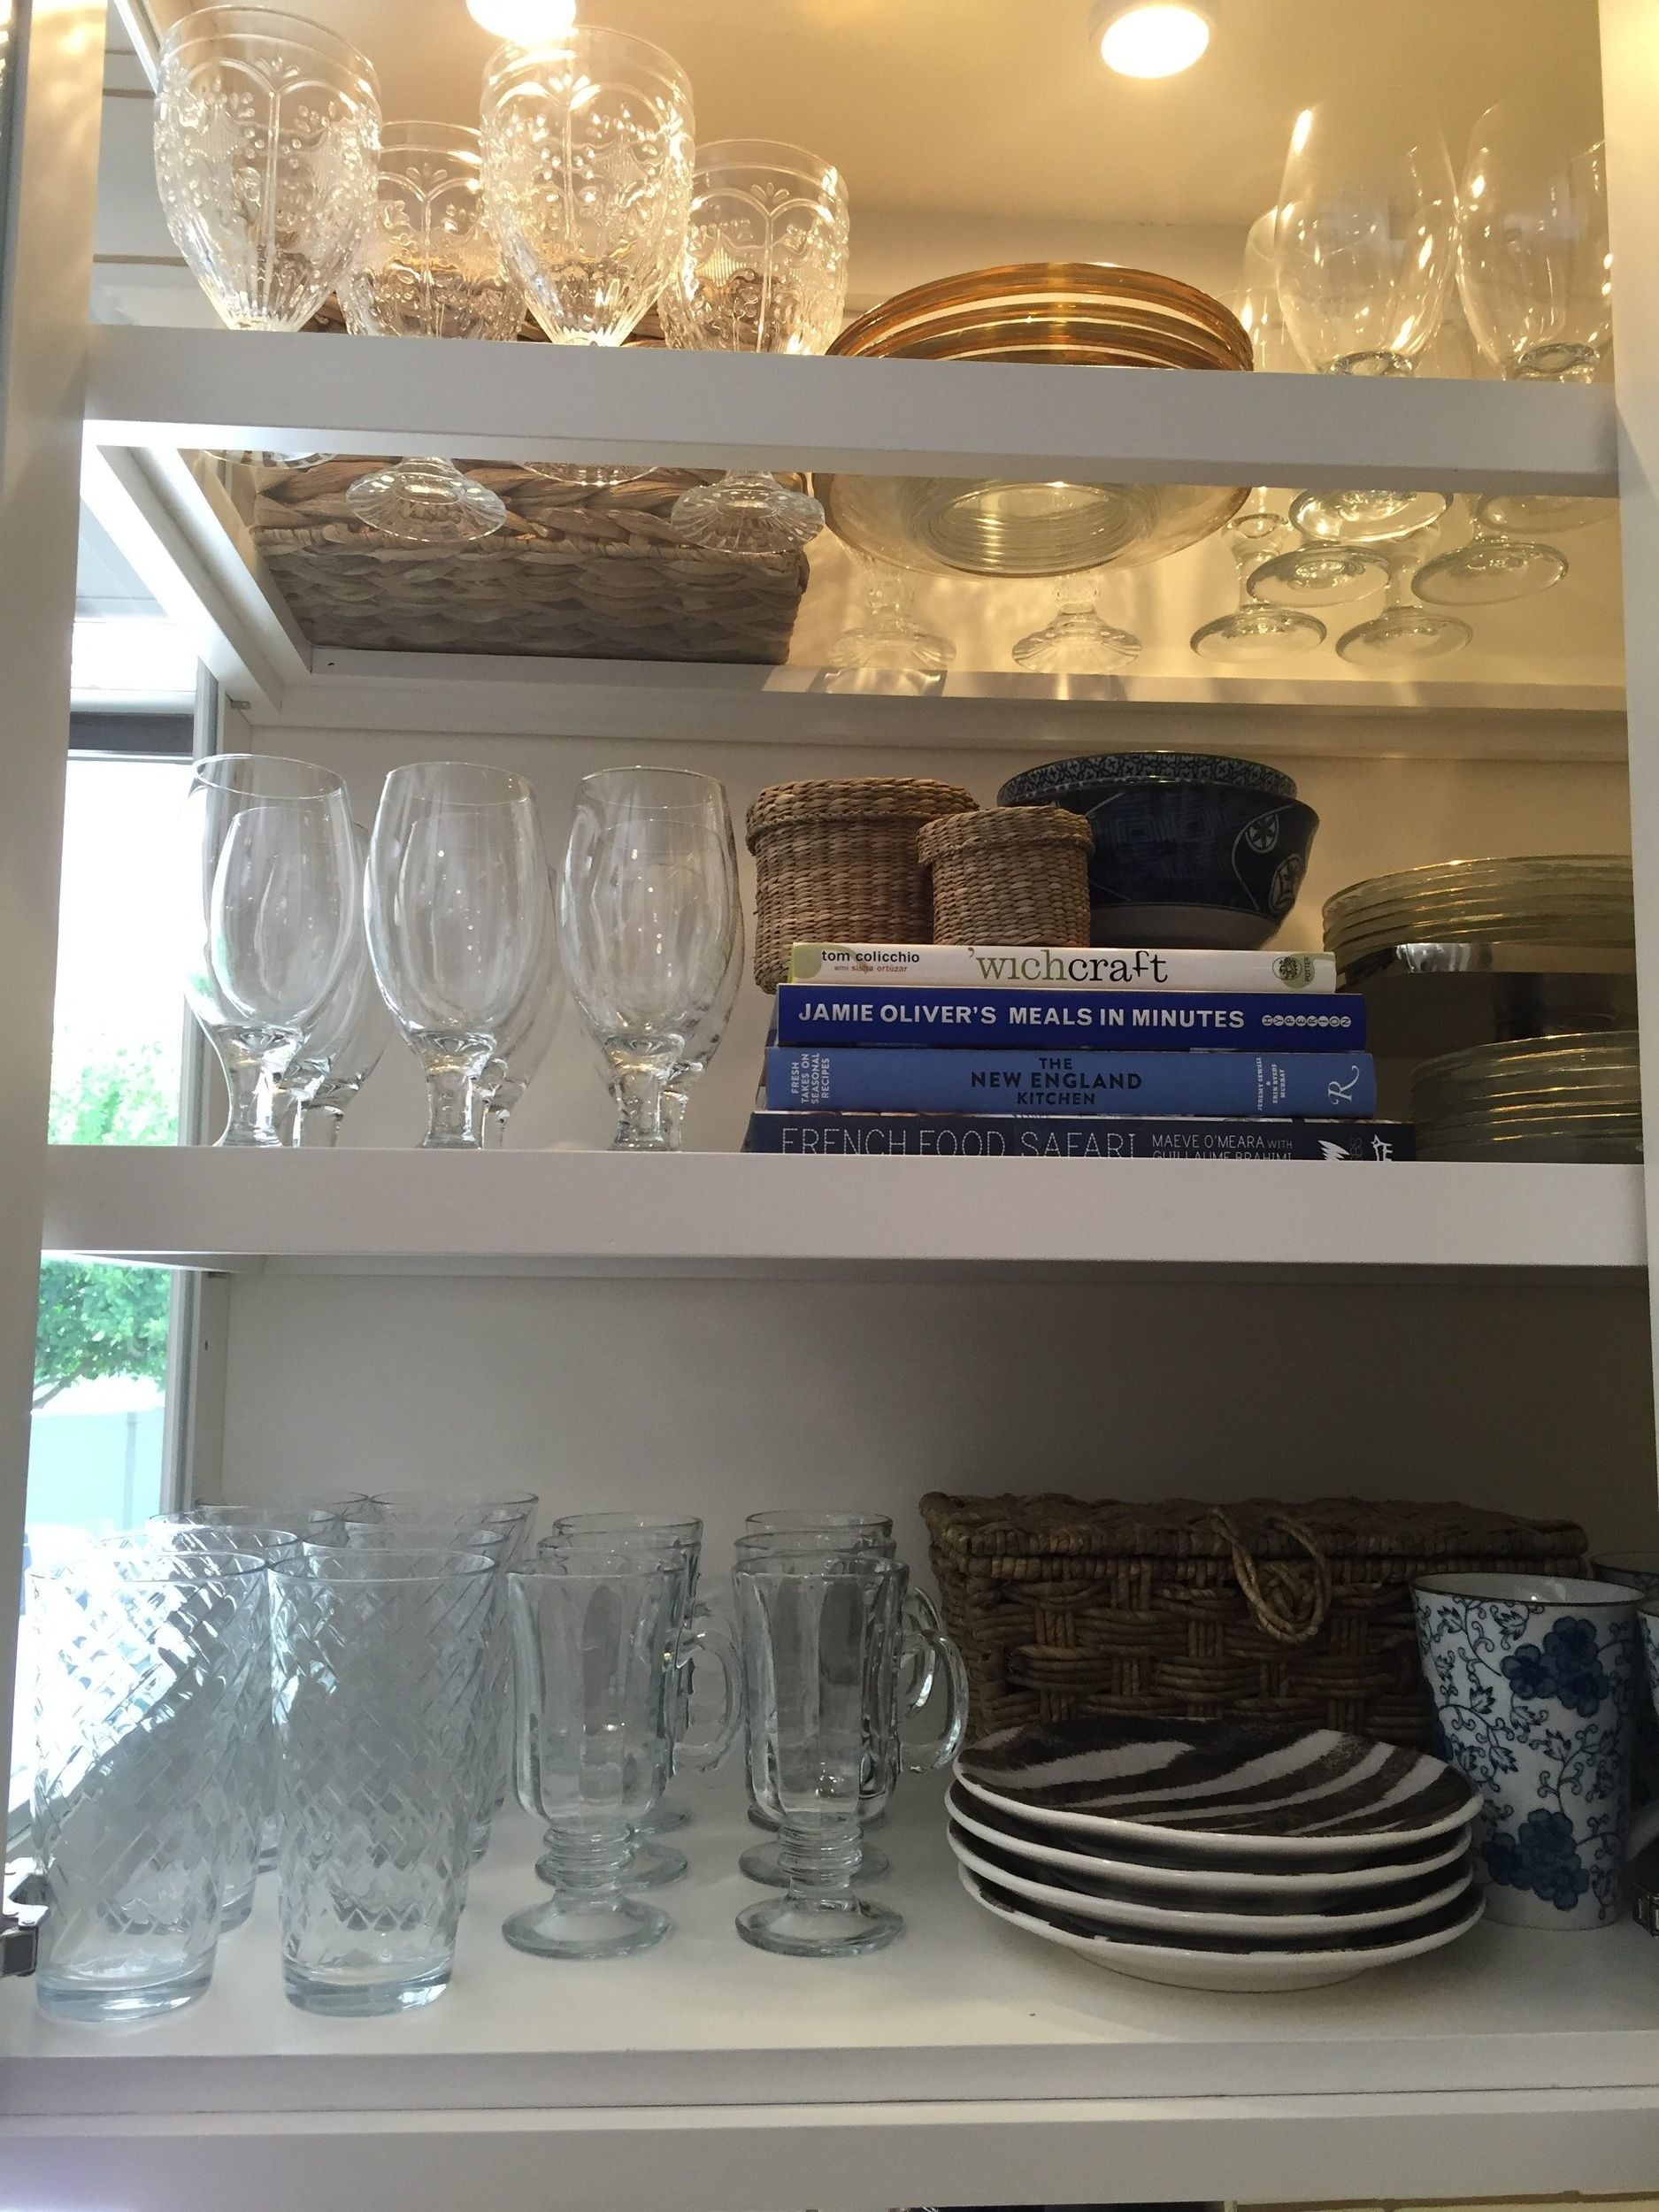 Great example of mixing every day glassware with other yumy goodies and dishes